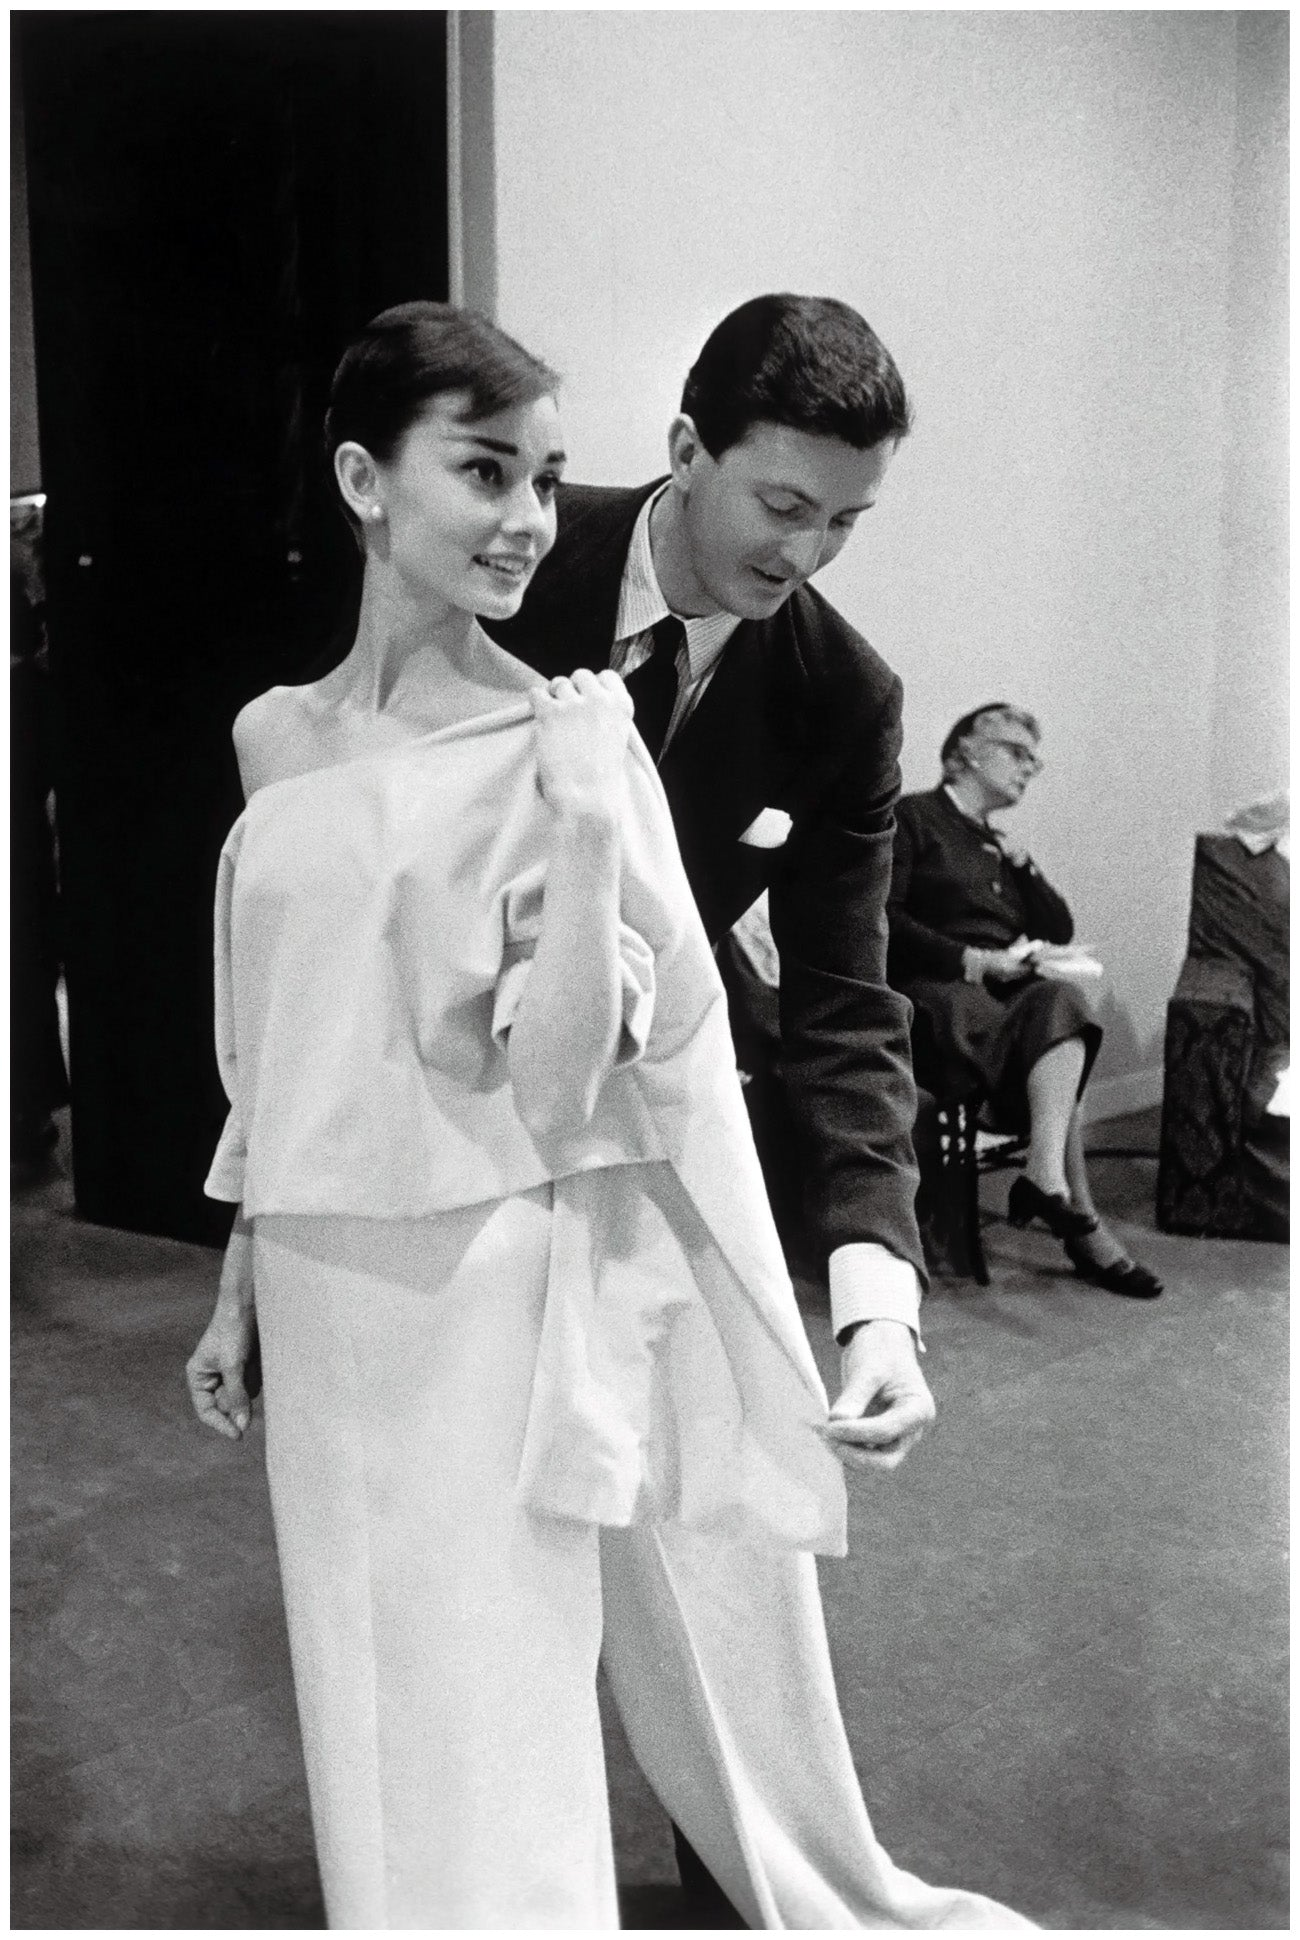 Audrey Hepburn and Givenchy